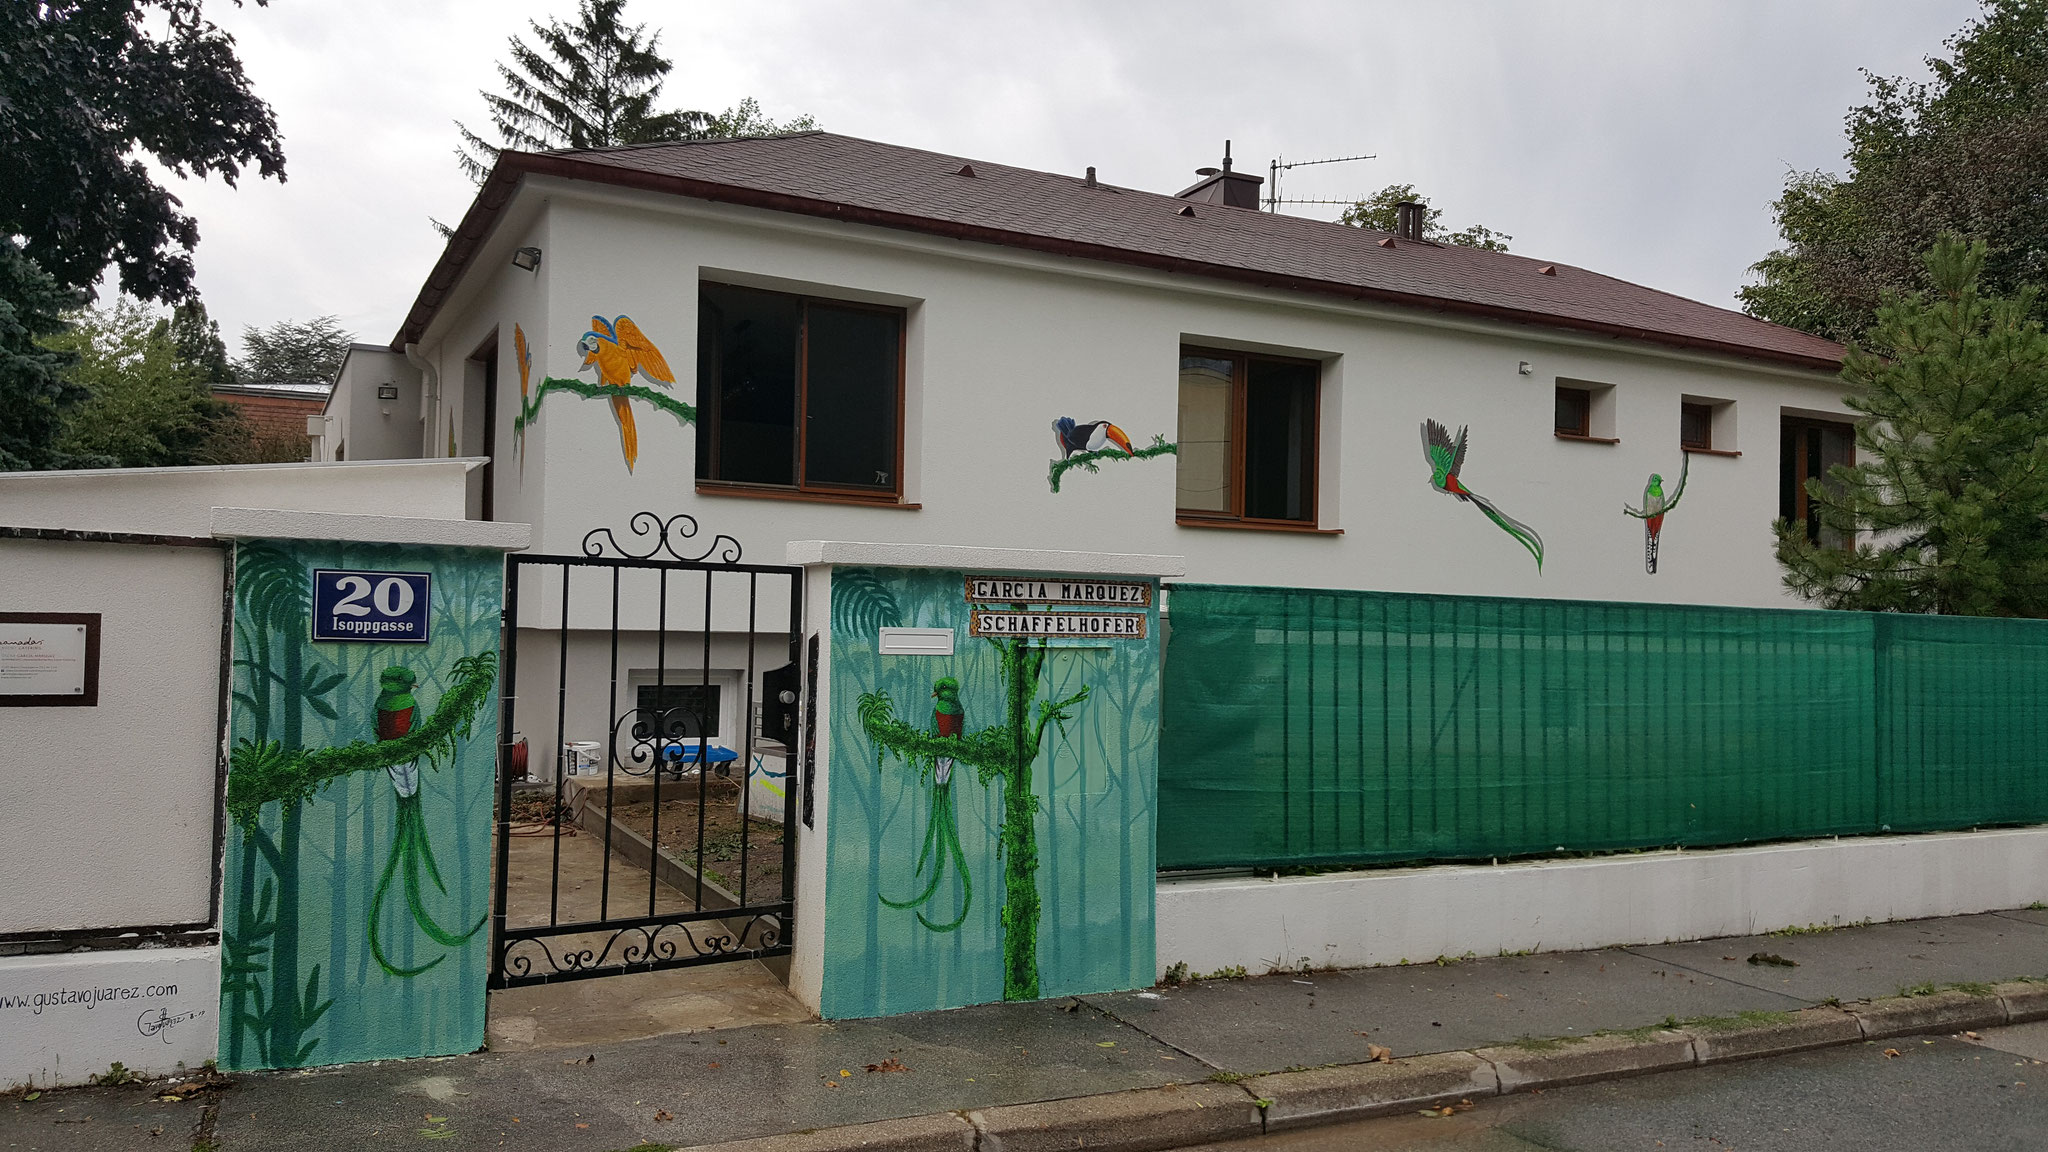 Casa de los Pajaros, Acrylic on facade, Private - 1230 Vienna